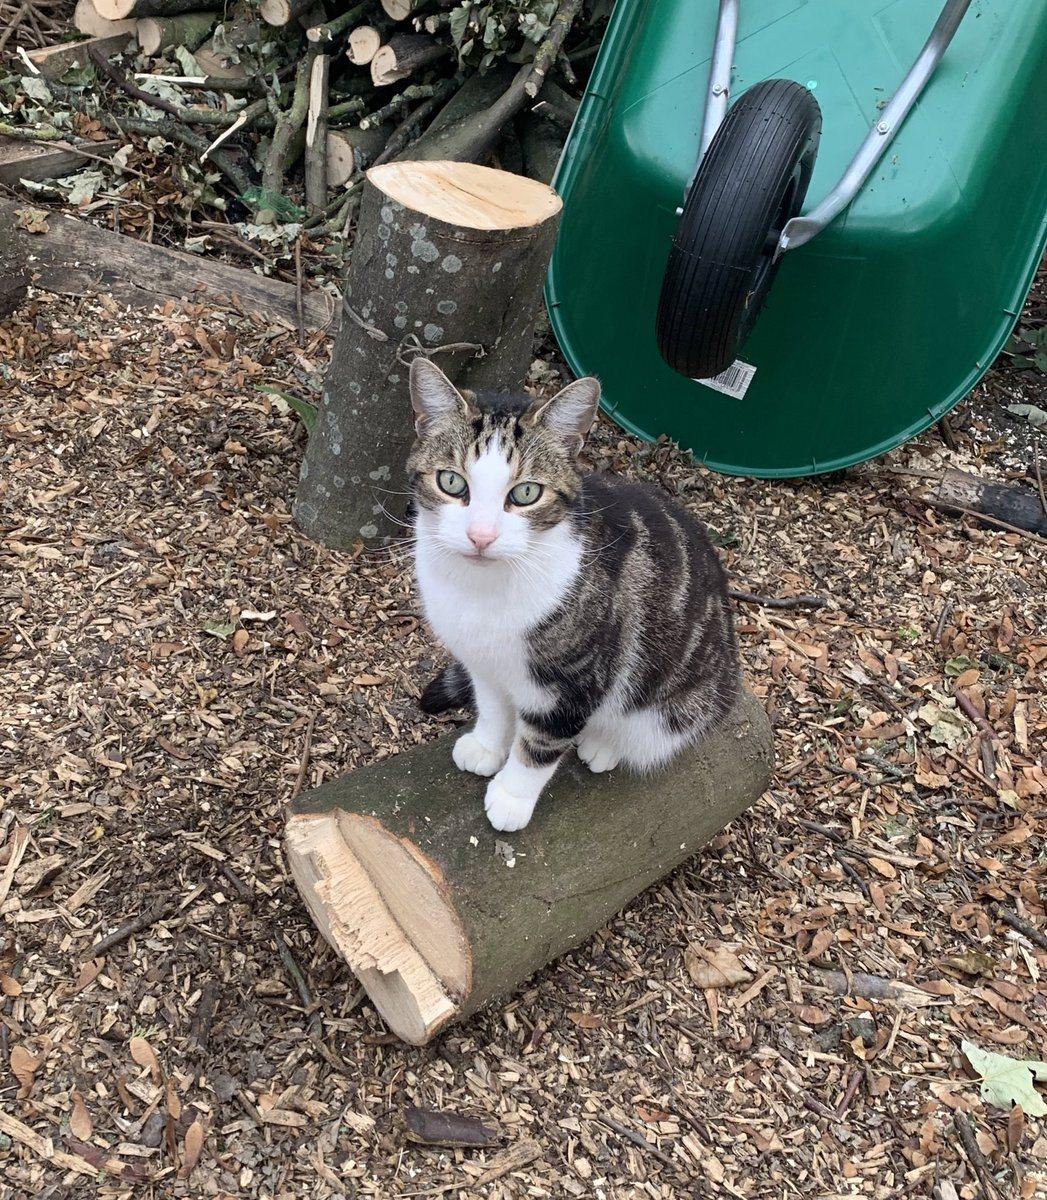 Hey everyone look at my cat sat on his log #meow https://t.co/55ZD5GZjB0